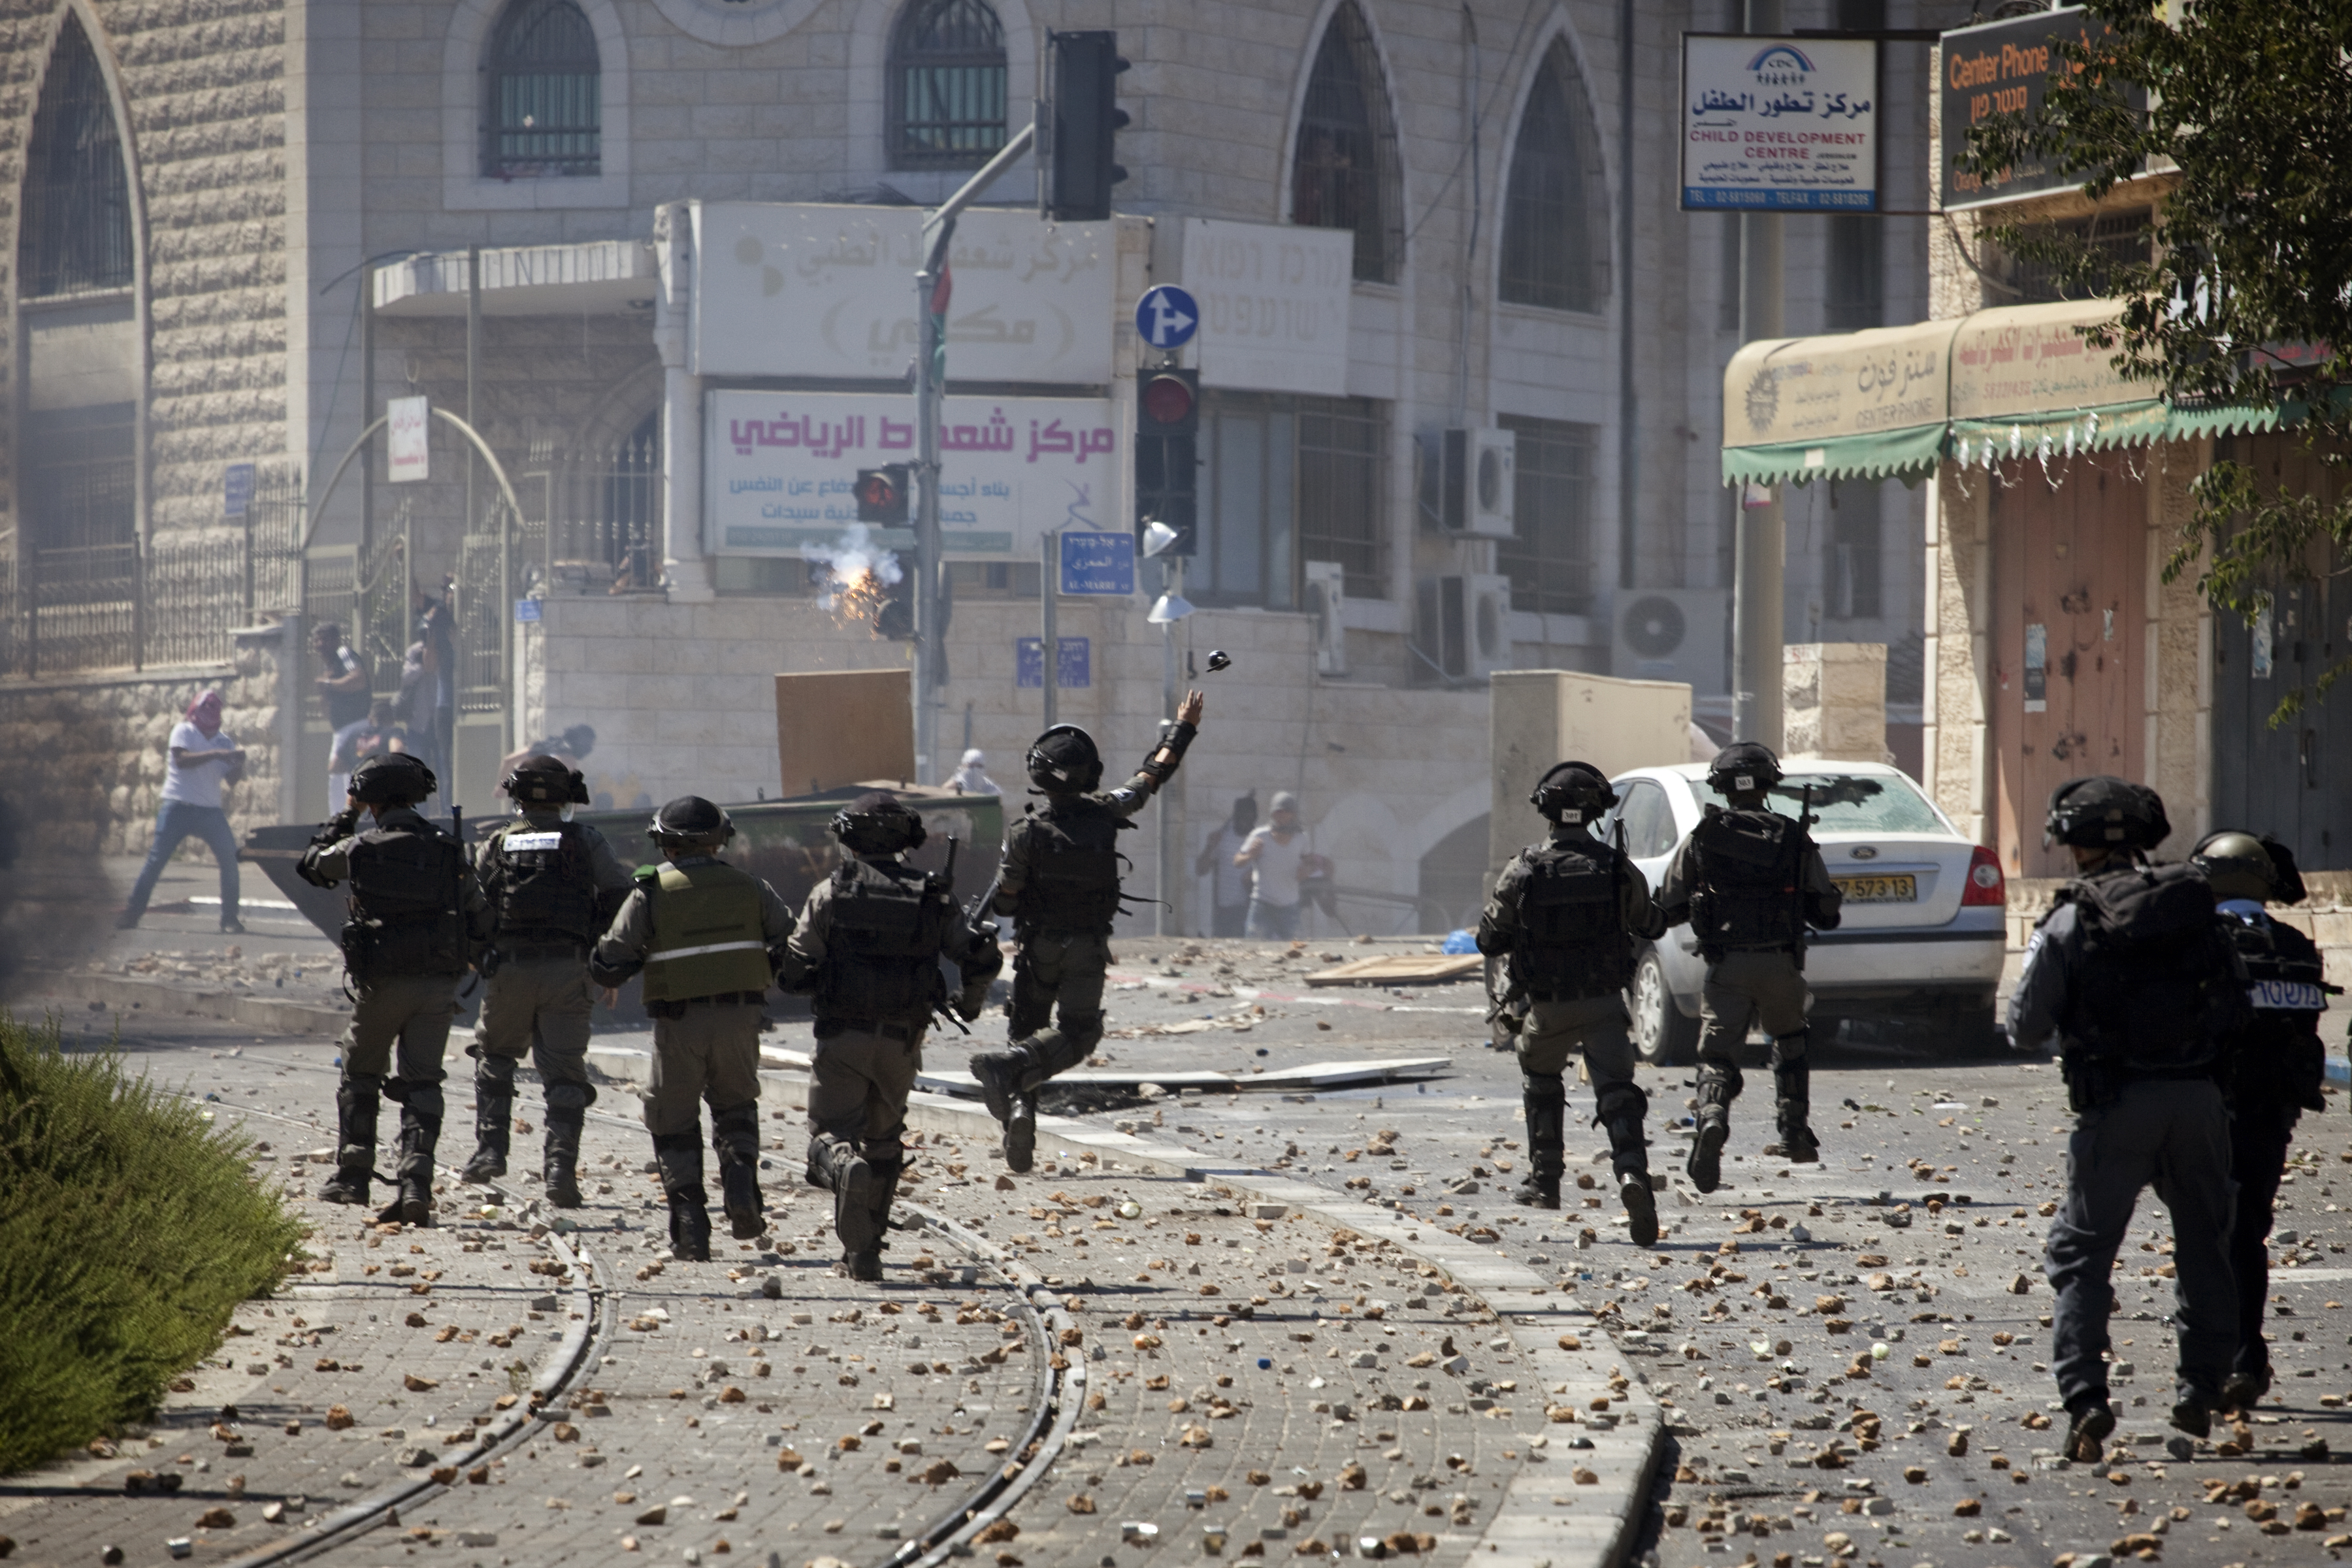 An Israeli soldier throws a grenade during clashes with Palestinians after a suspected kidnap and murder of a Palestinian teen